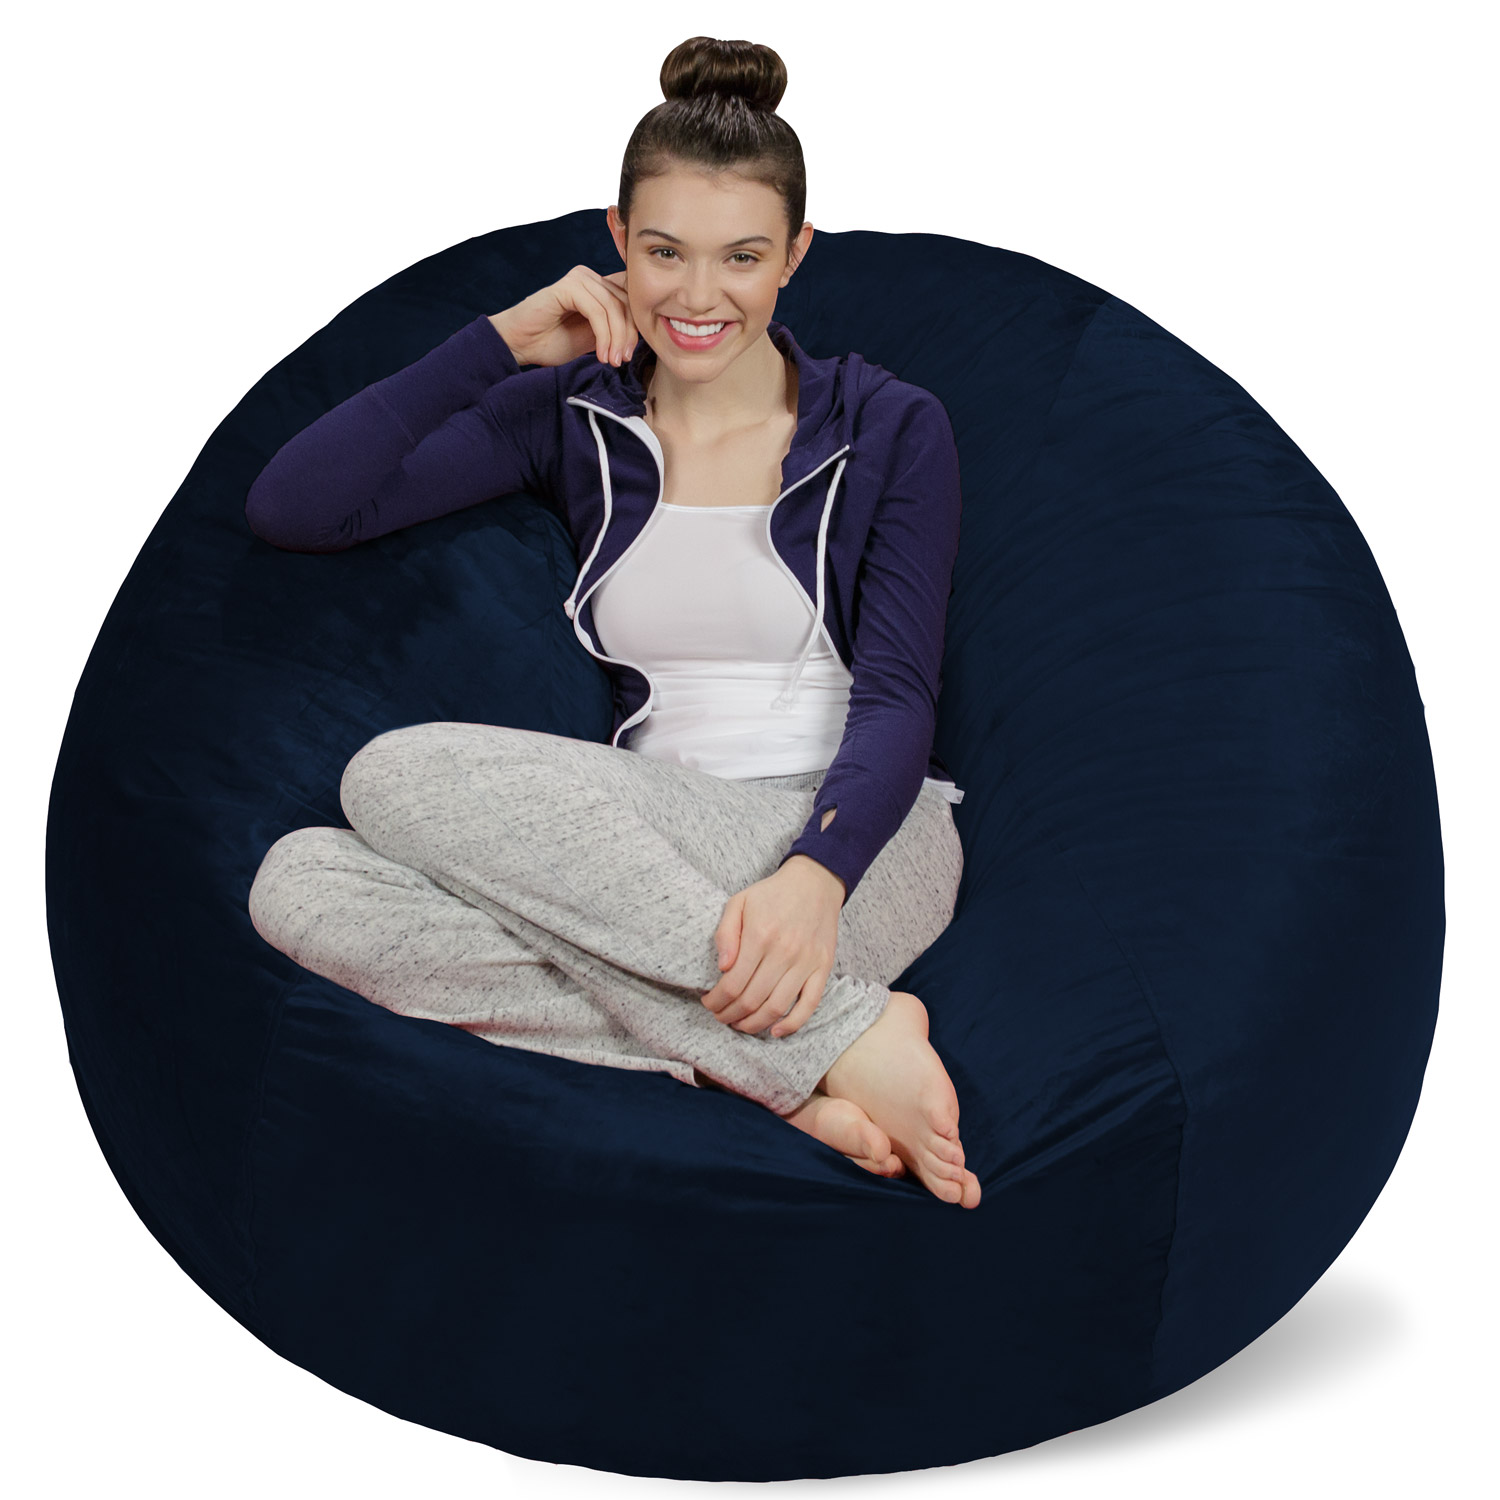 Sofa Sack Memory Foam Bean Bag Chair   5 Ft   Walmart.com